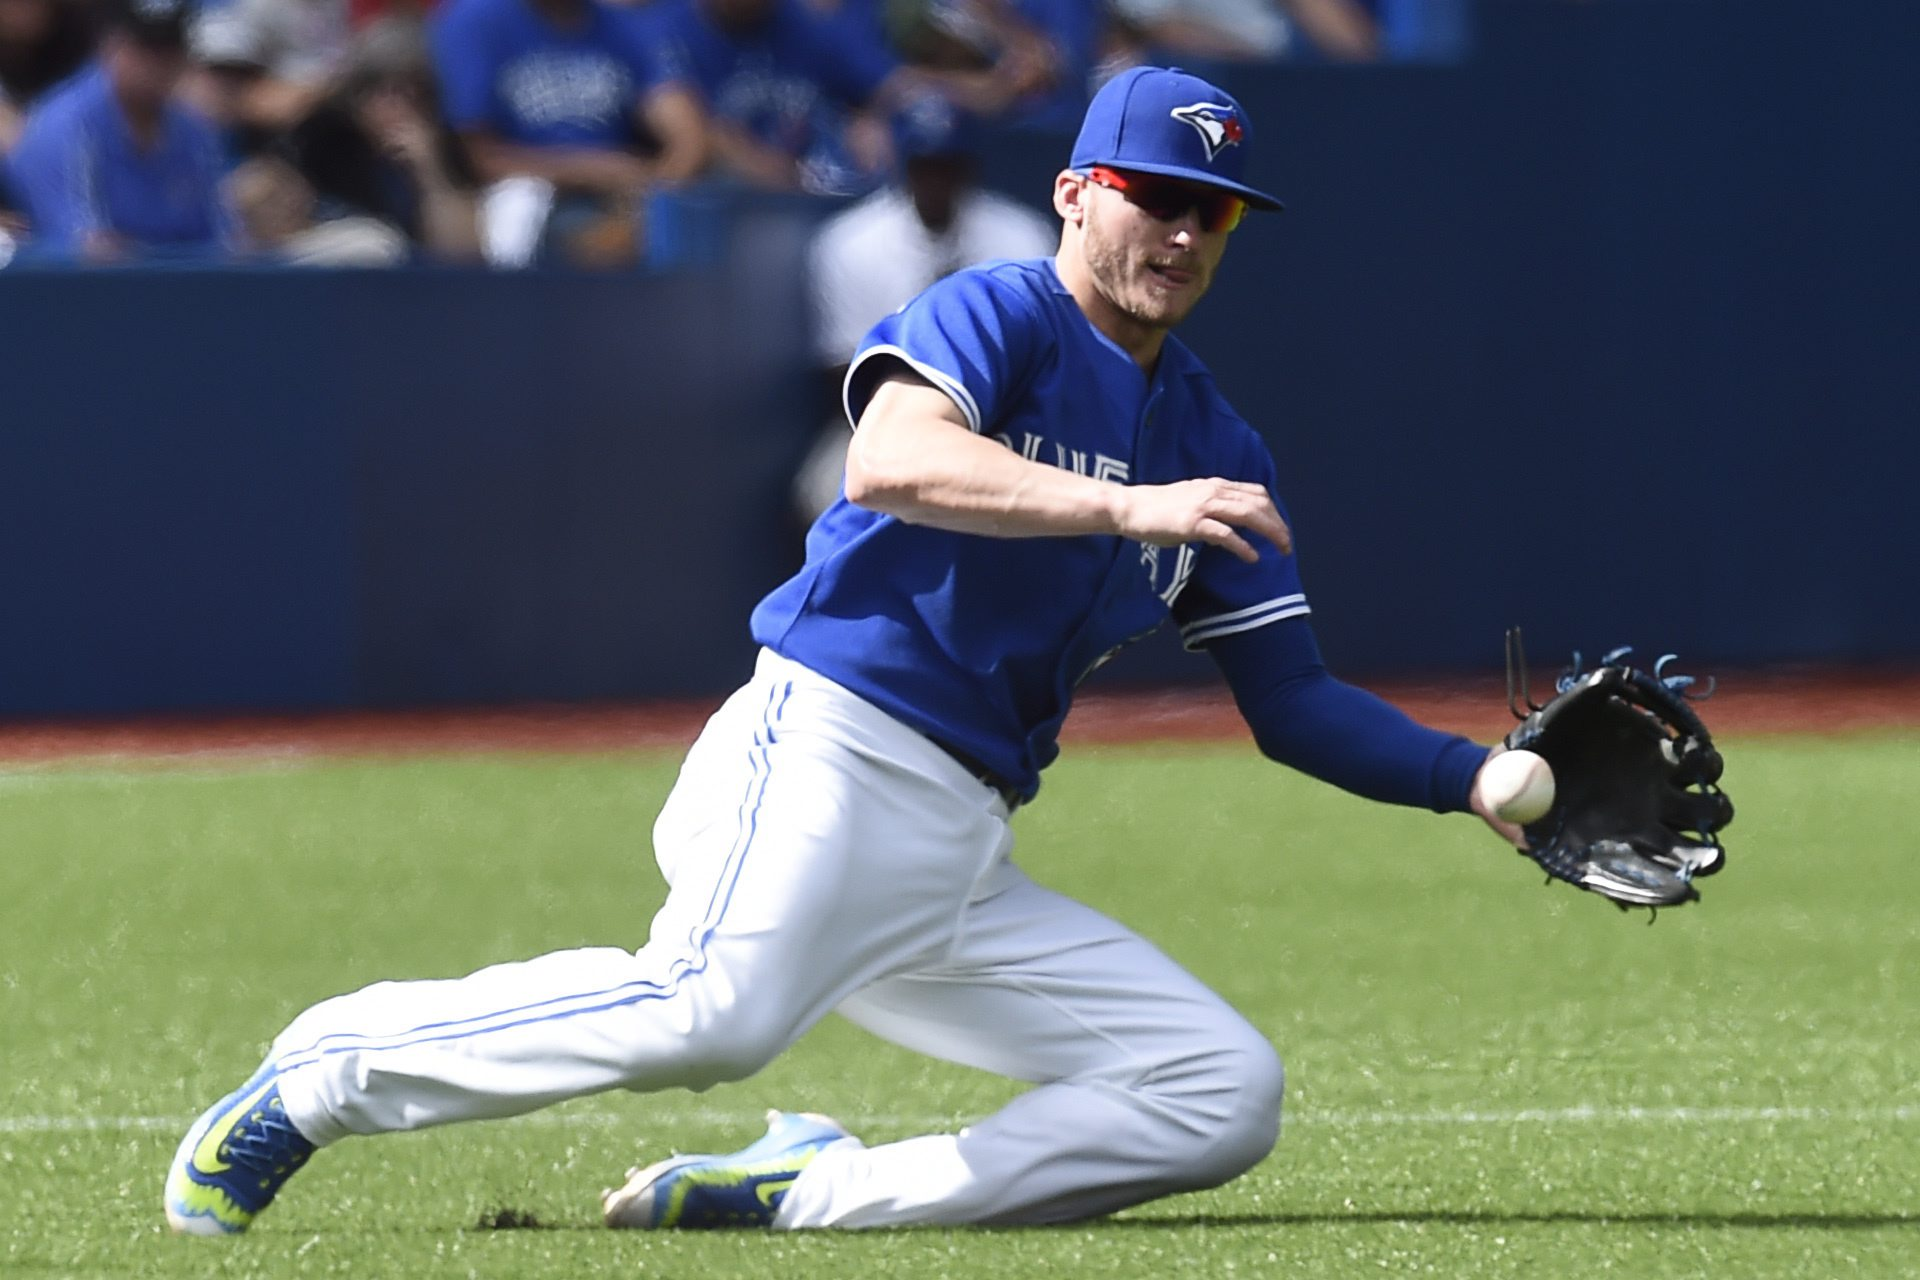 Toronto Blue Jays' third baseman Josh Donaldson makes the play on a ground ball hit by Tampa Bay Rays' Luke Maile during fourth inning of a baseball game in Toronto, Sunday, Sept. 27, 2015. (Frank Gunn/The Canadian Press via AP) MANDATORY CREDIT